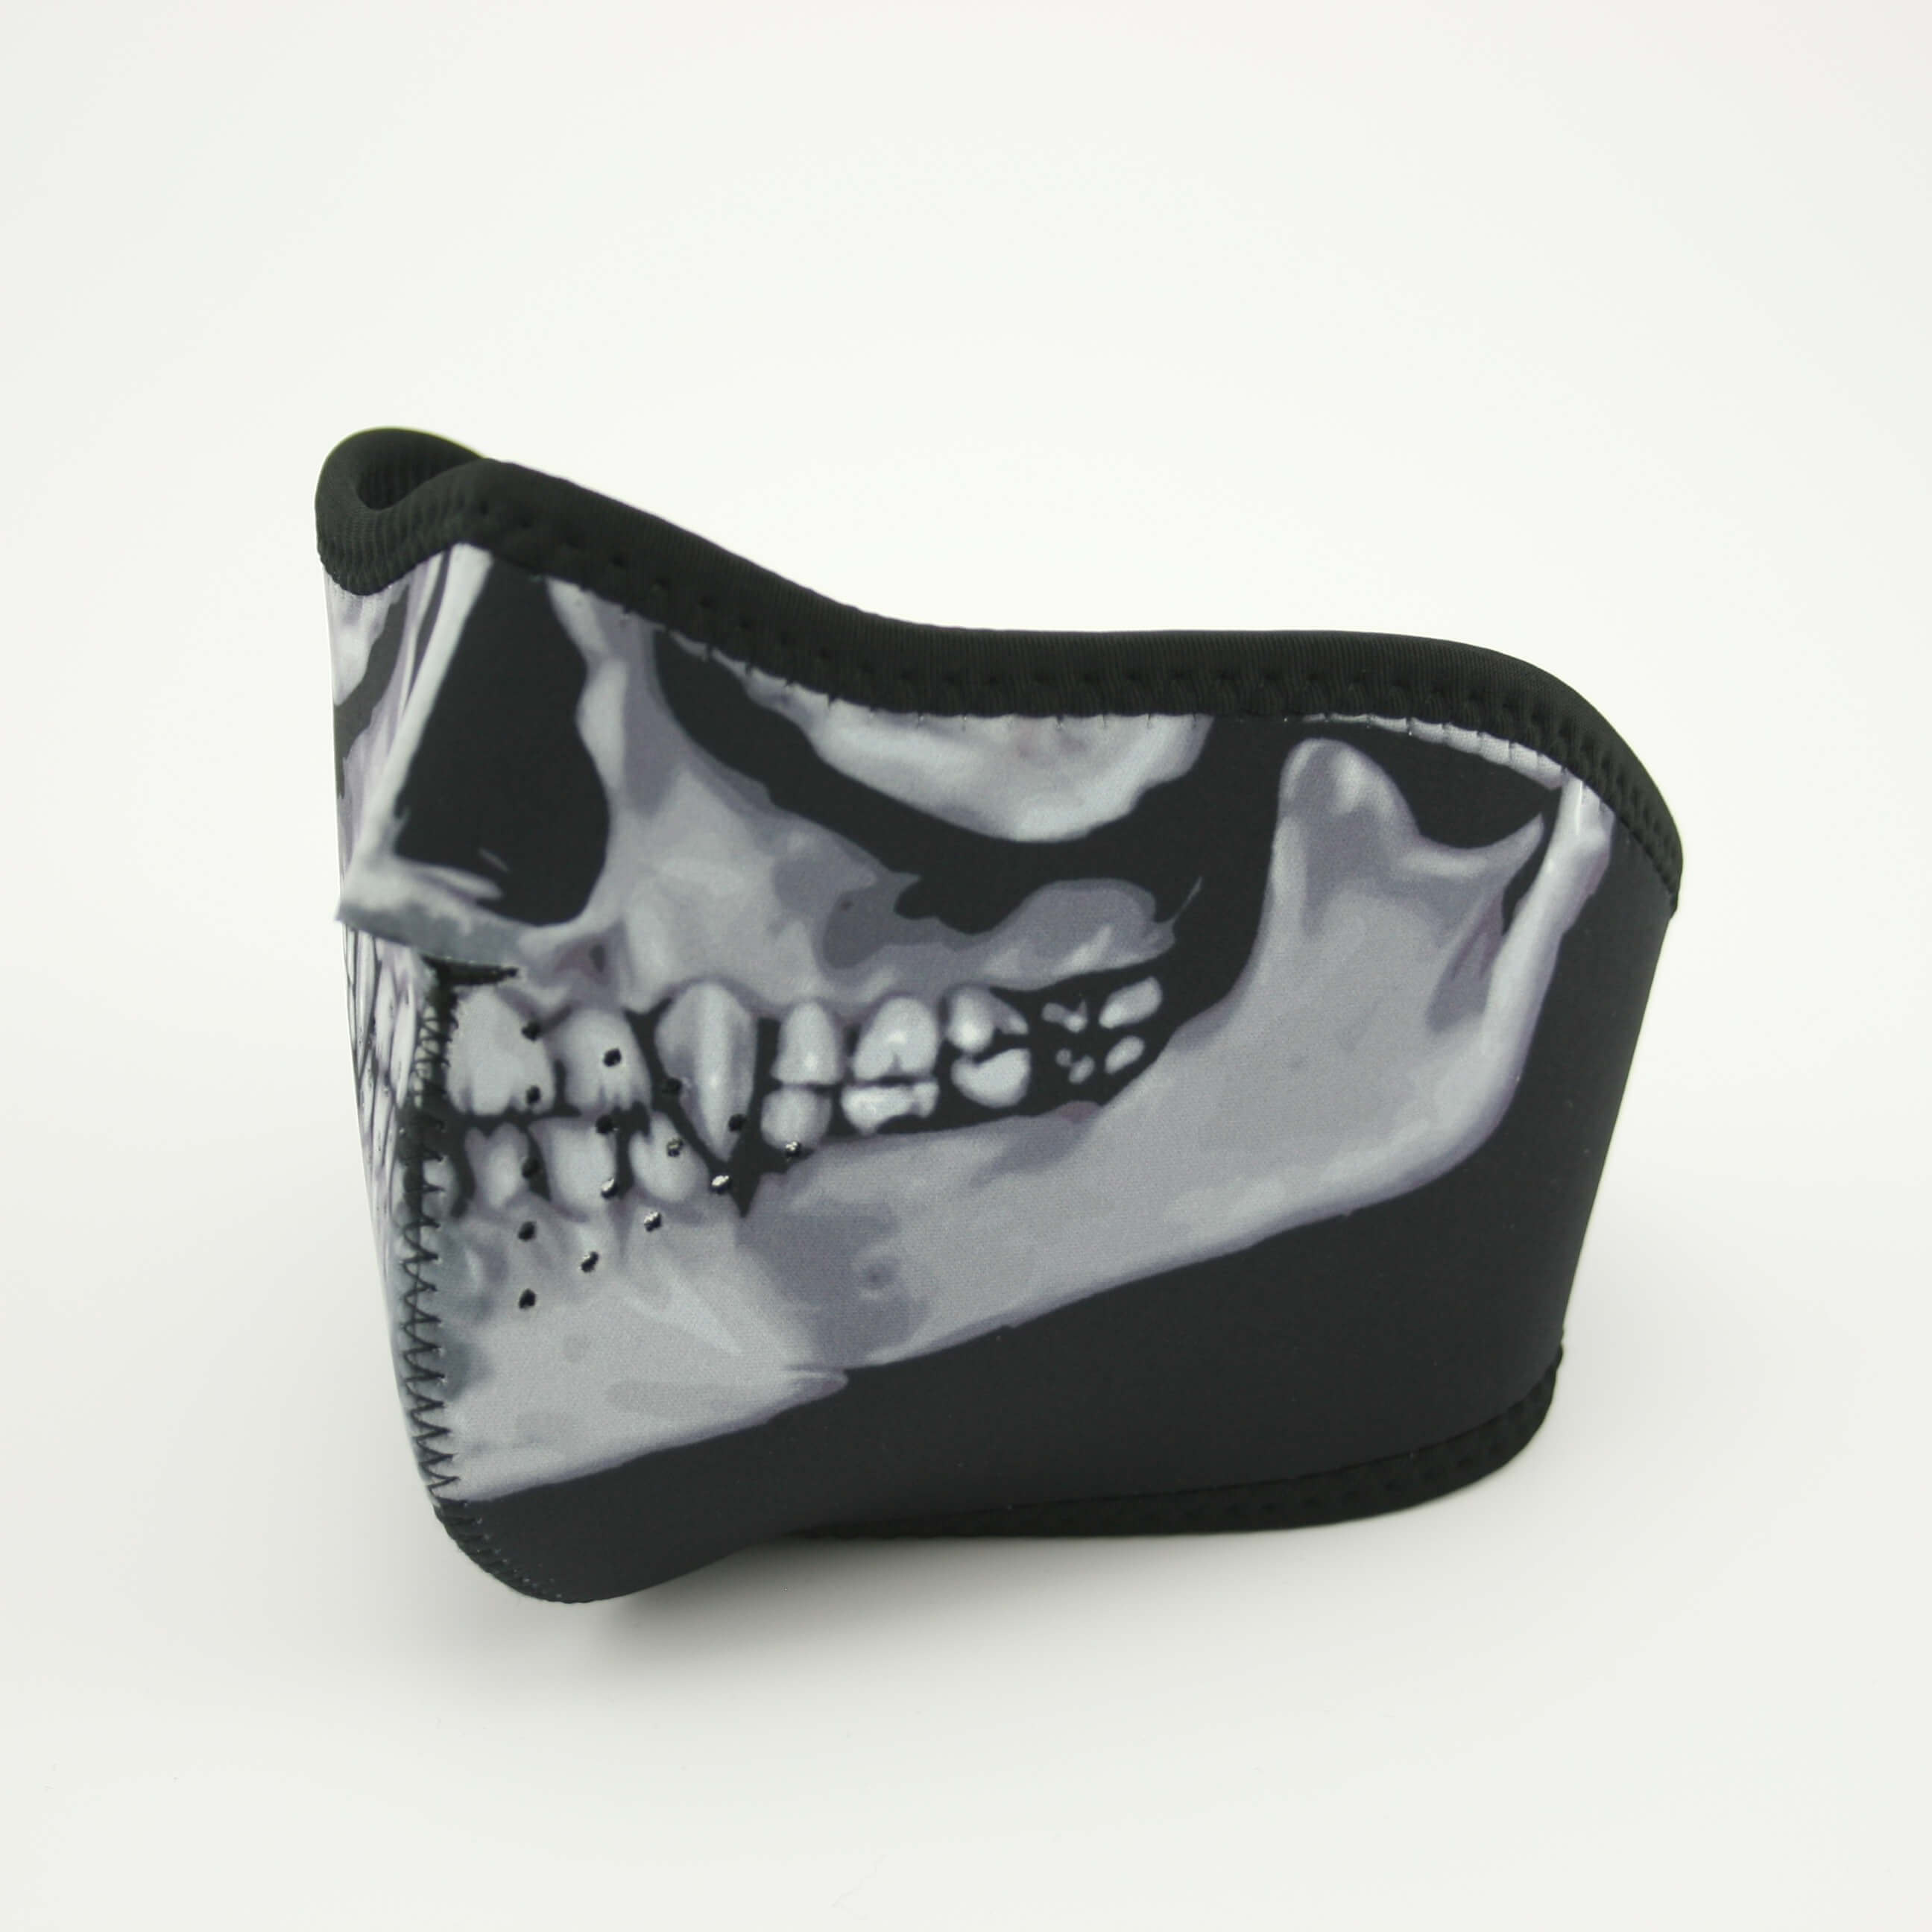 Skull mouth mask half grey black side